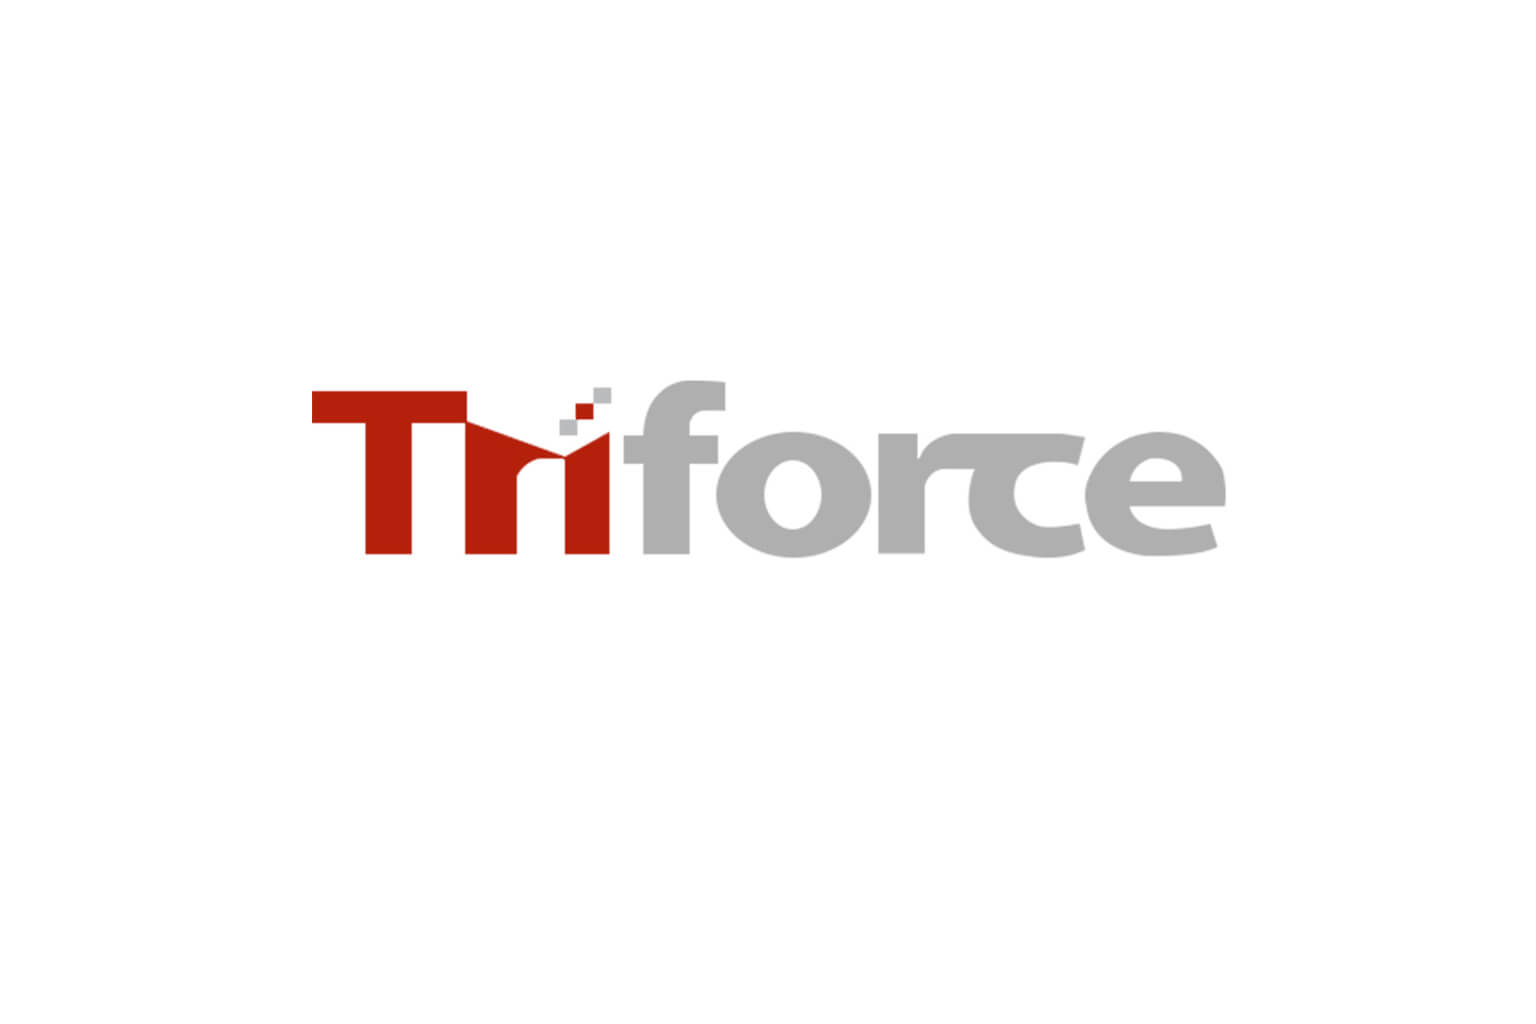 Triforce Global Solutions